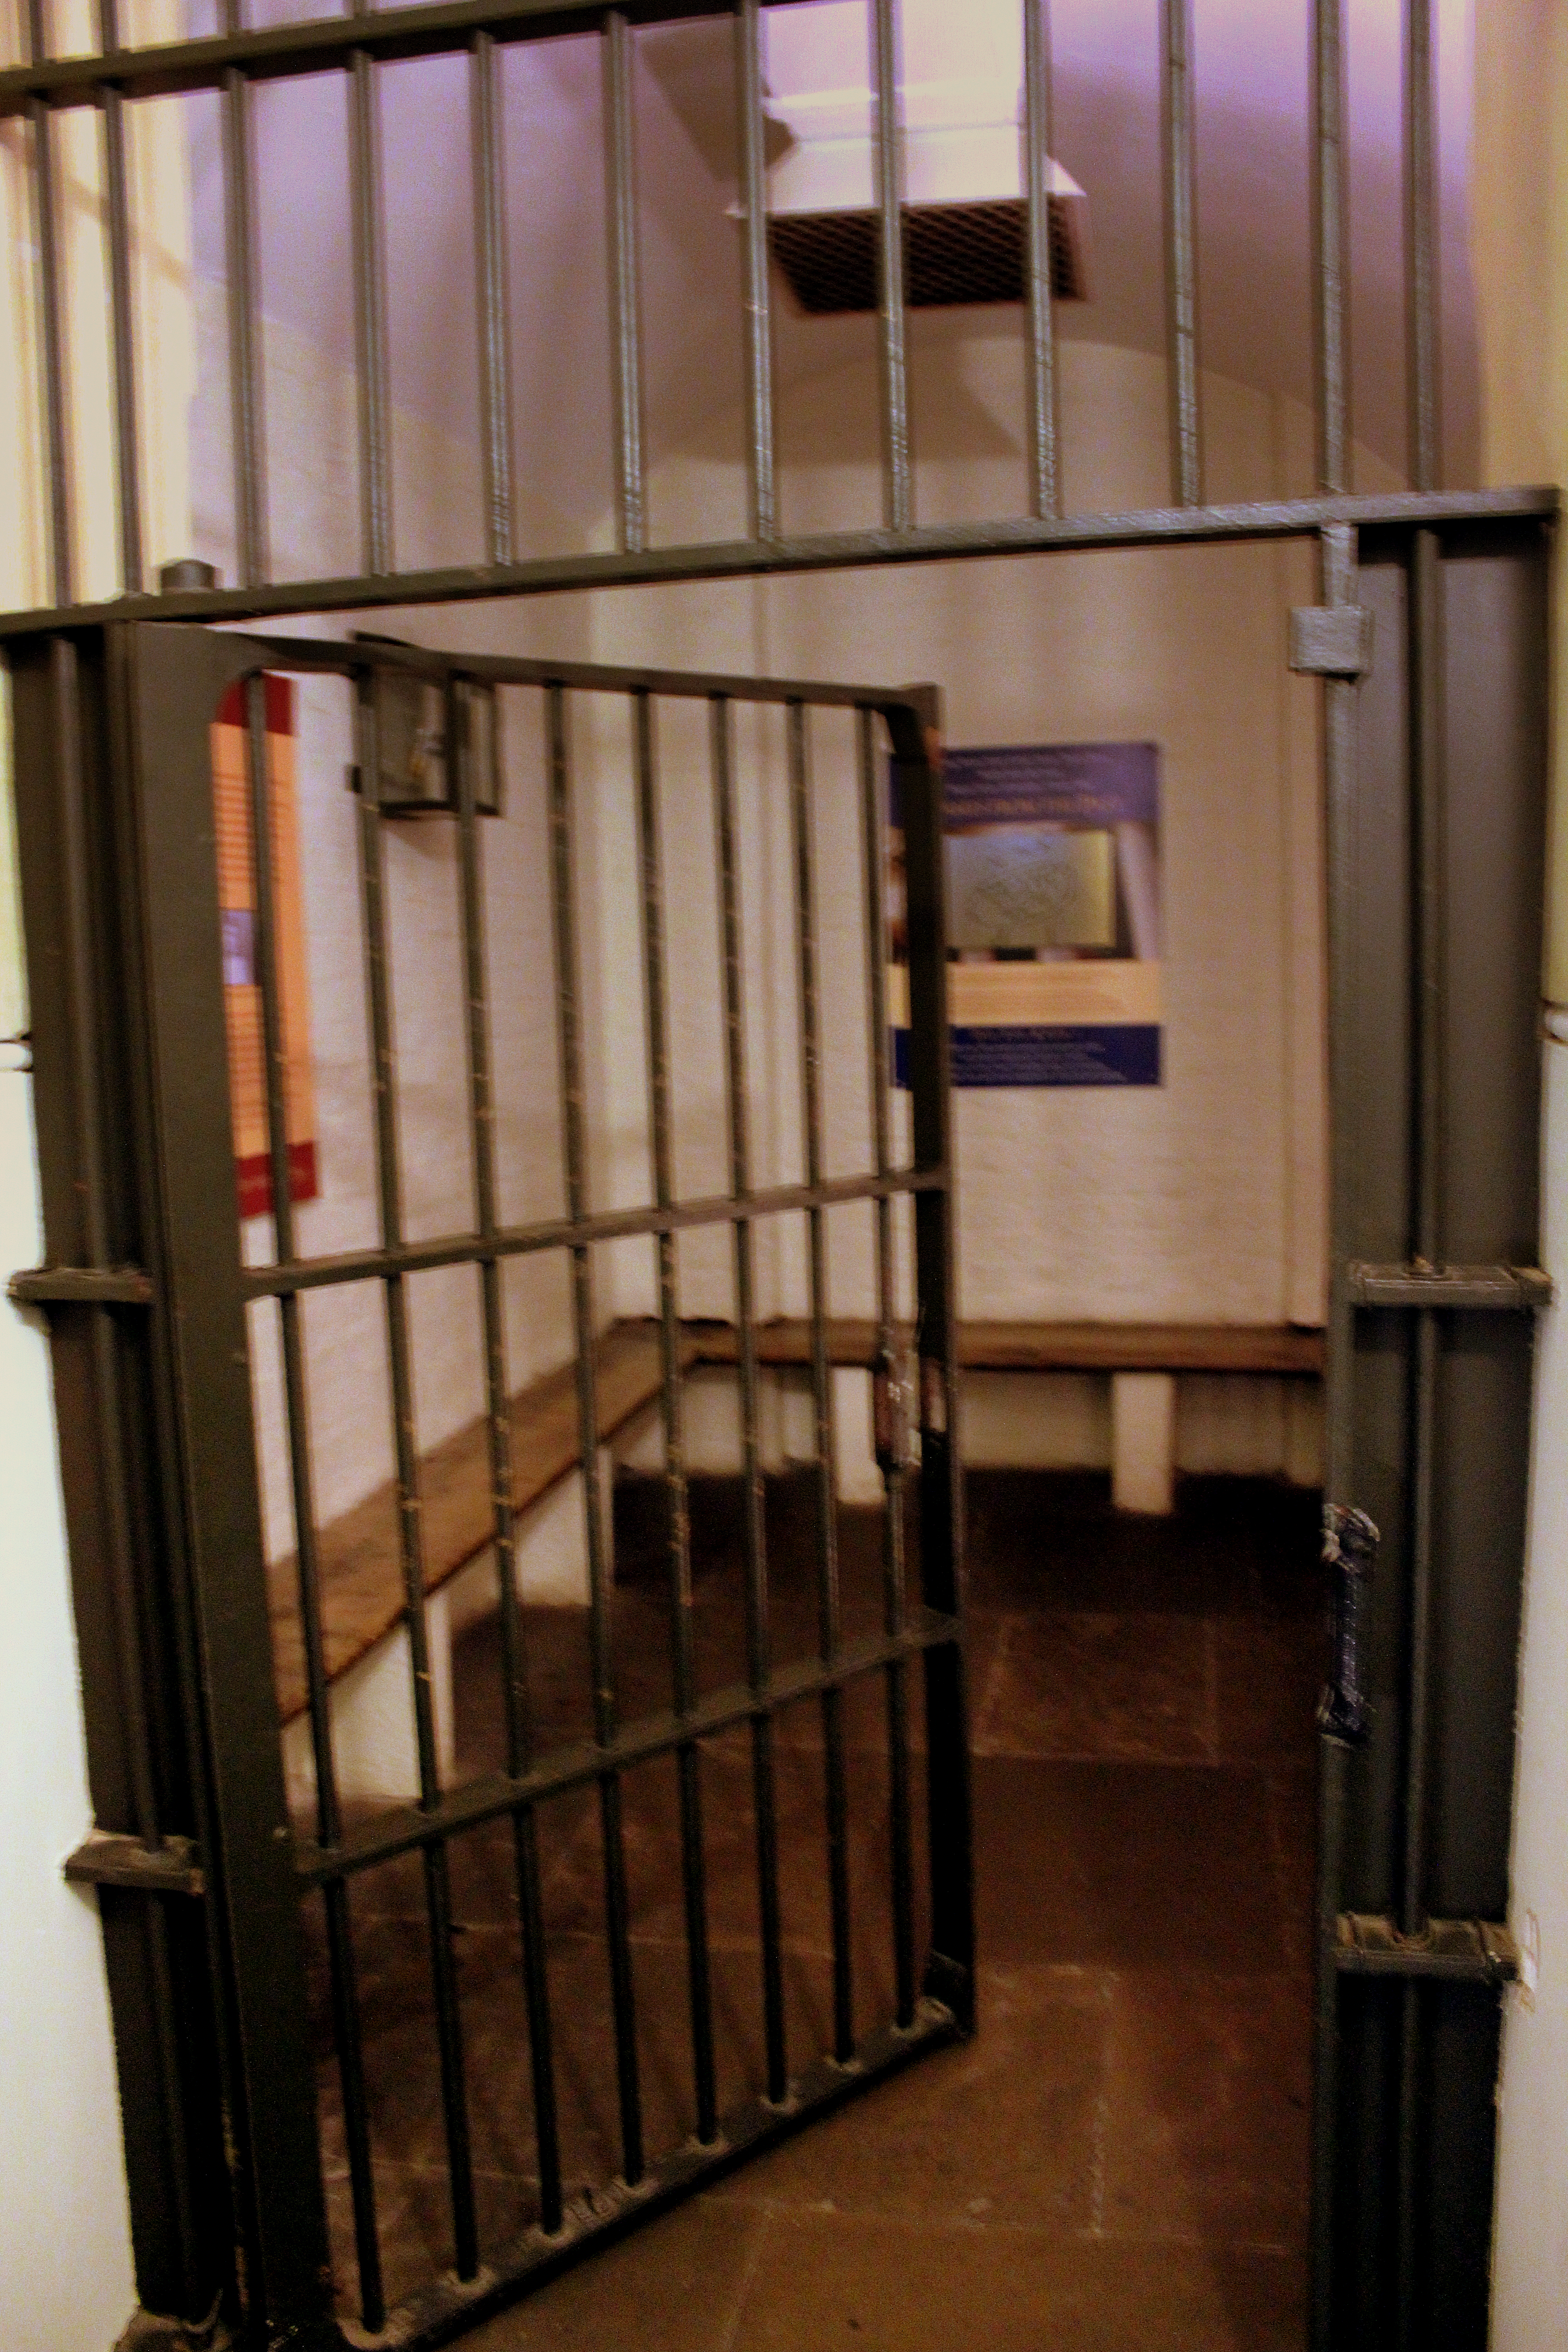 HOLDING_CELL_AT_THE_CROWN_COURT_NO1_ST_GEORGES_HALL_LIVERPOOL_JAN_2013_%288361476255%29.jpg?width=300